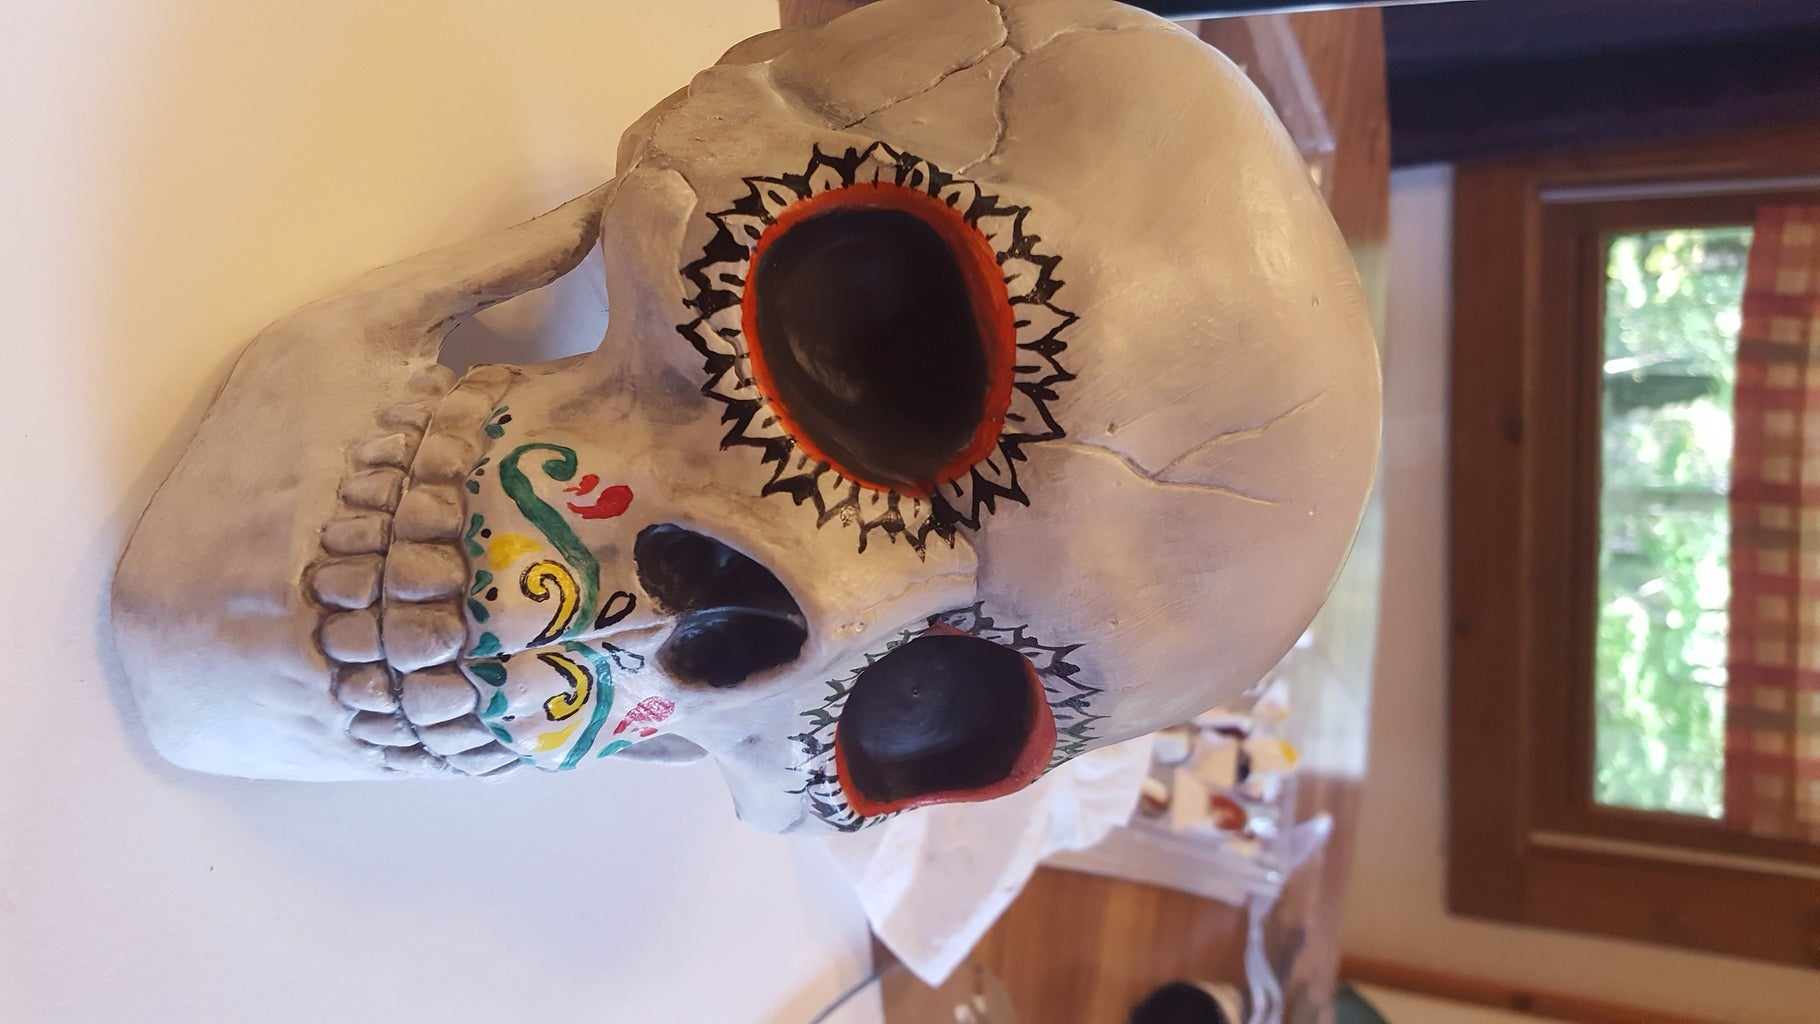 Painting the Skull